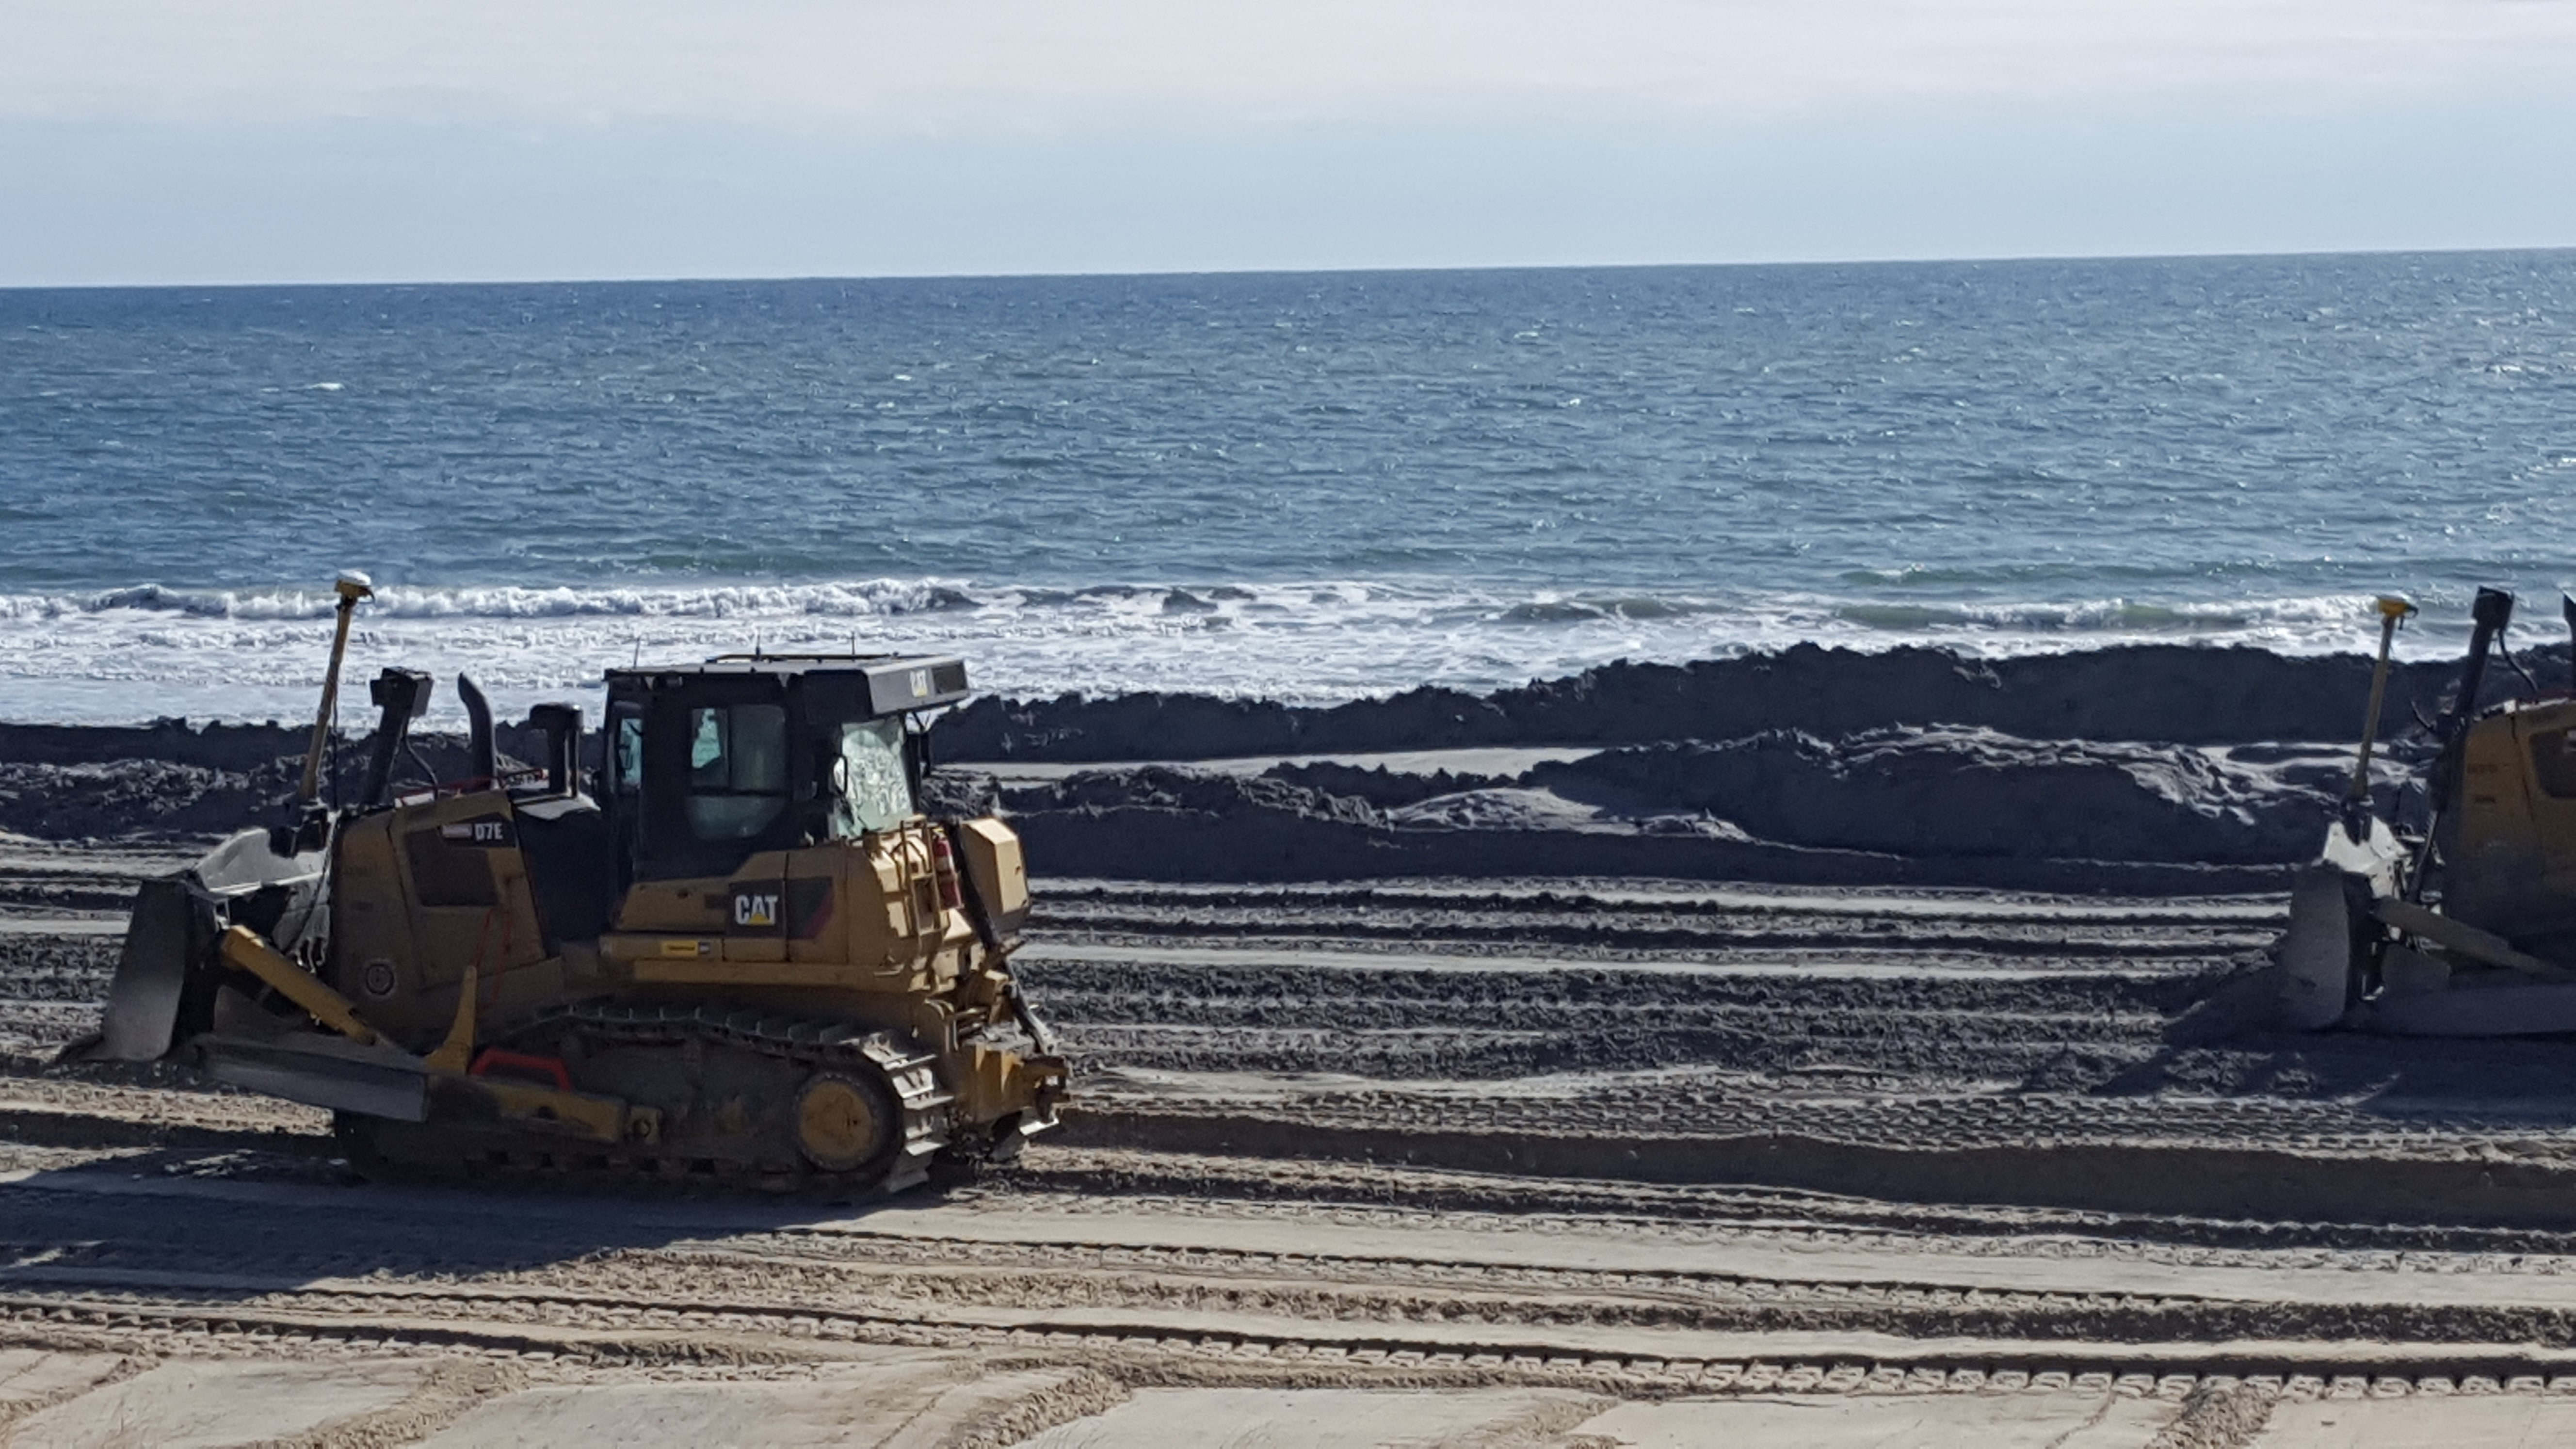 New beach is coming!